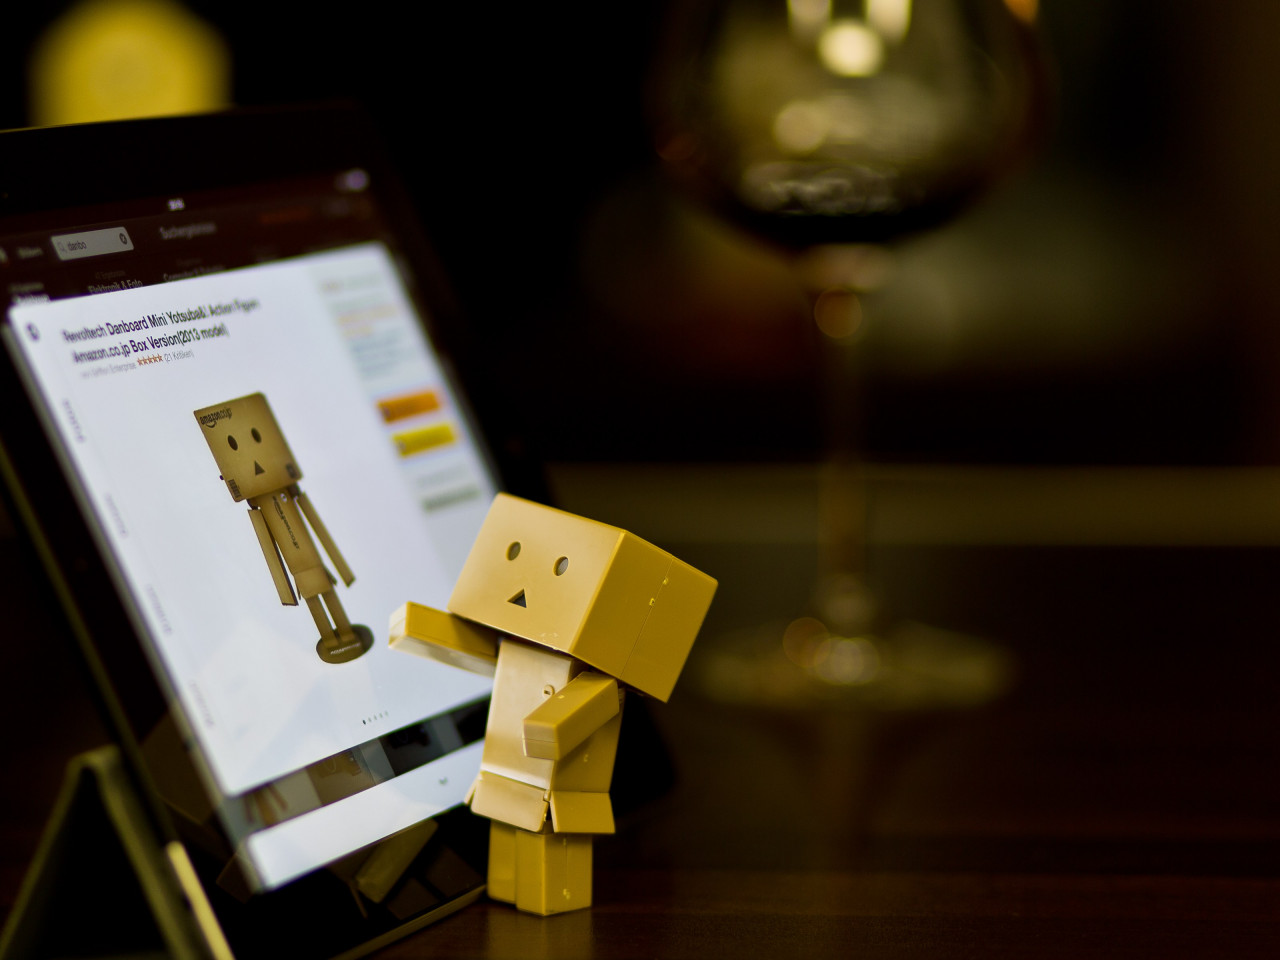 Danbo with tablet wallpaper 1280x960